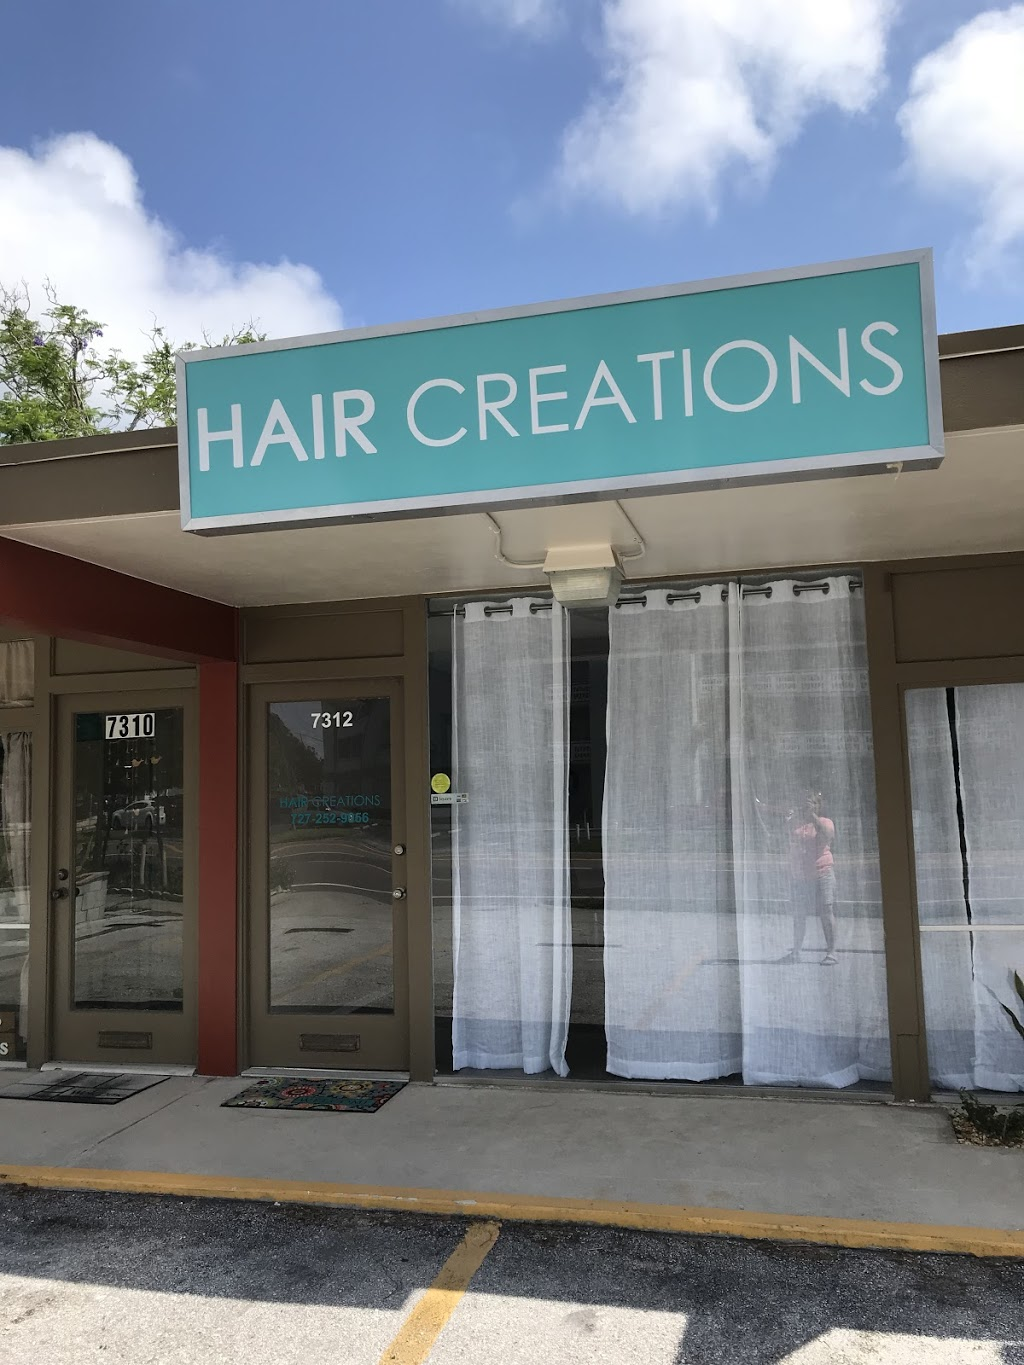 Hair Creations by Tish - hair care  | Photo 4 of 10 | Address: 7312 Central Ave, St. Petersburg, FL 33707, USA | Phone: (727) 252-9056